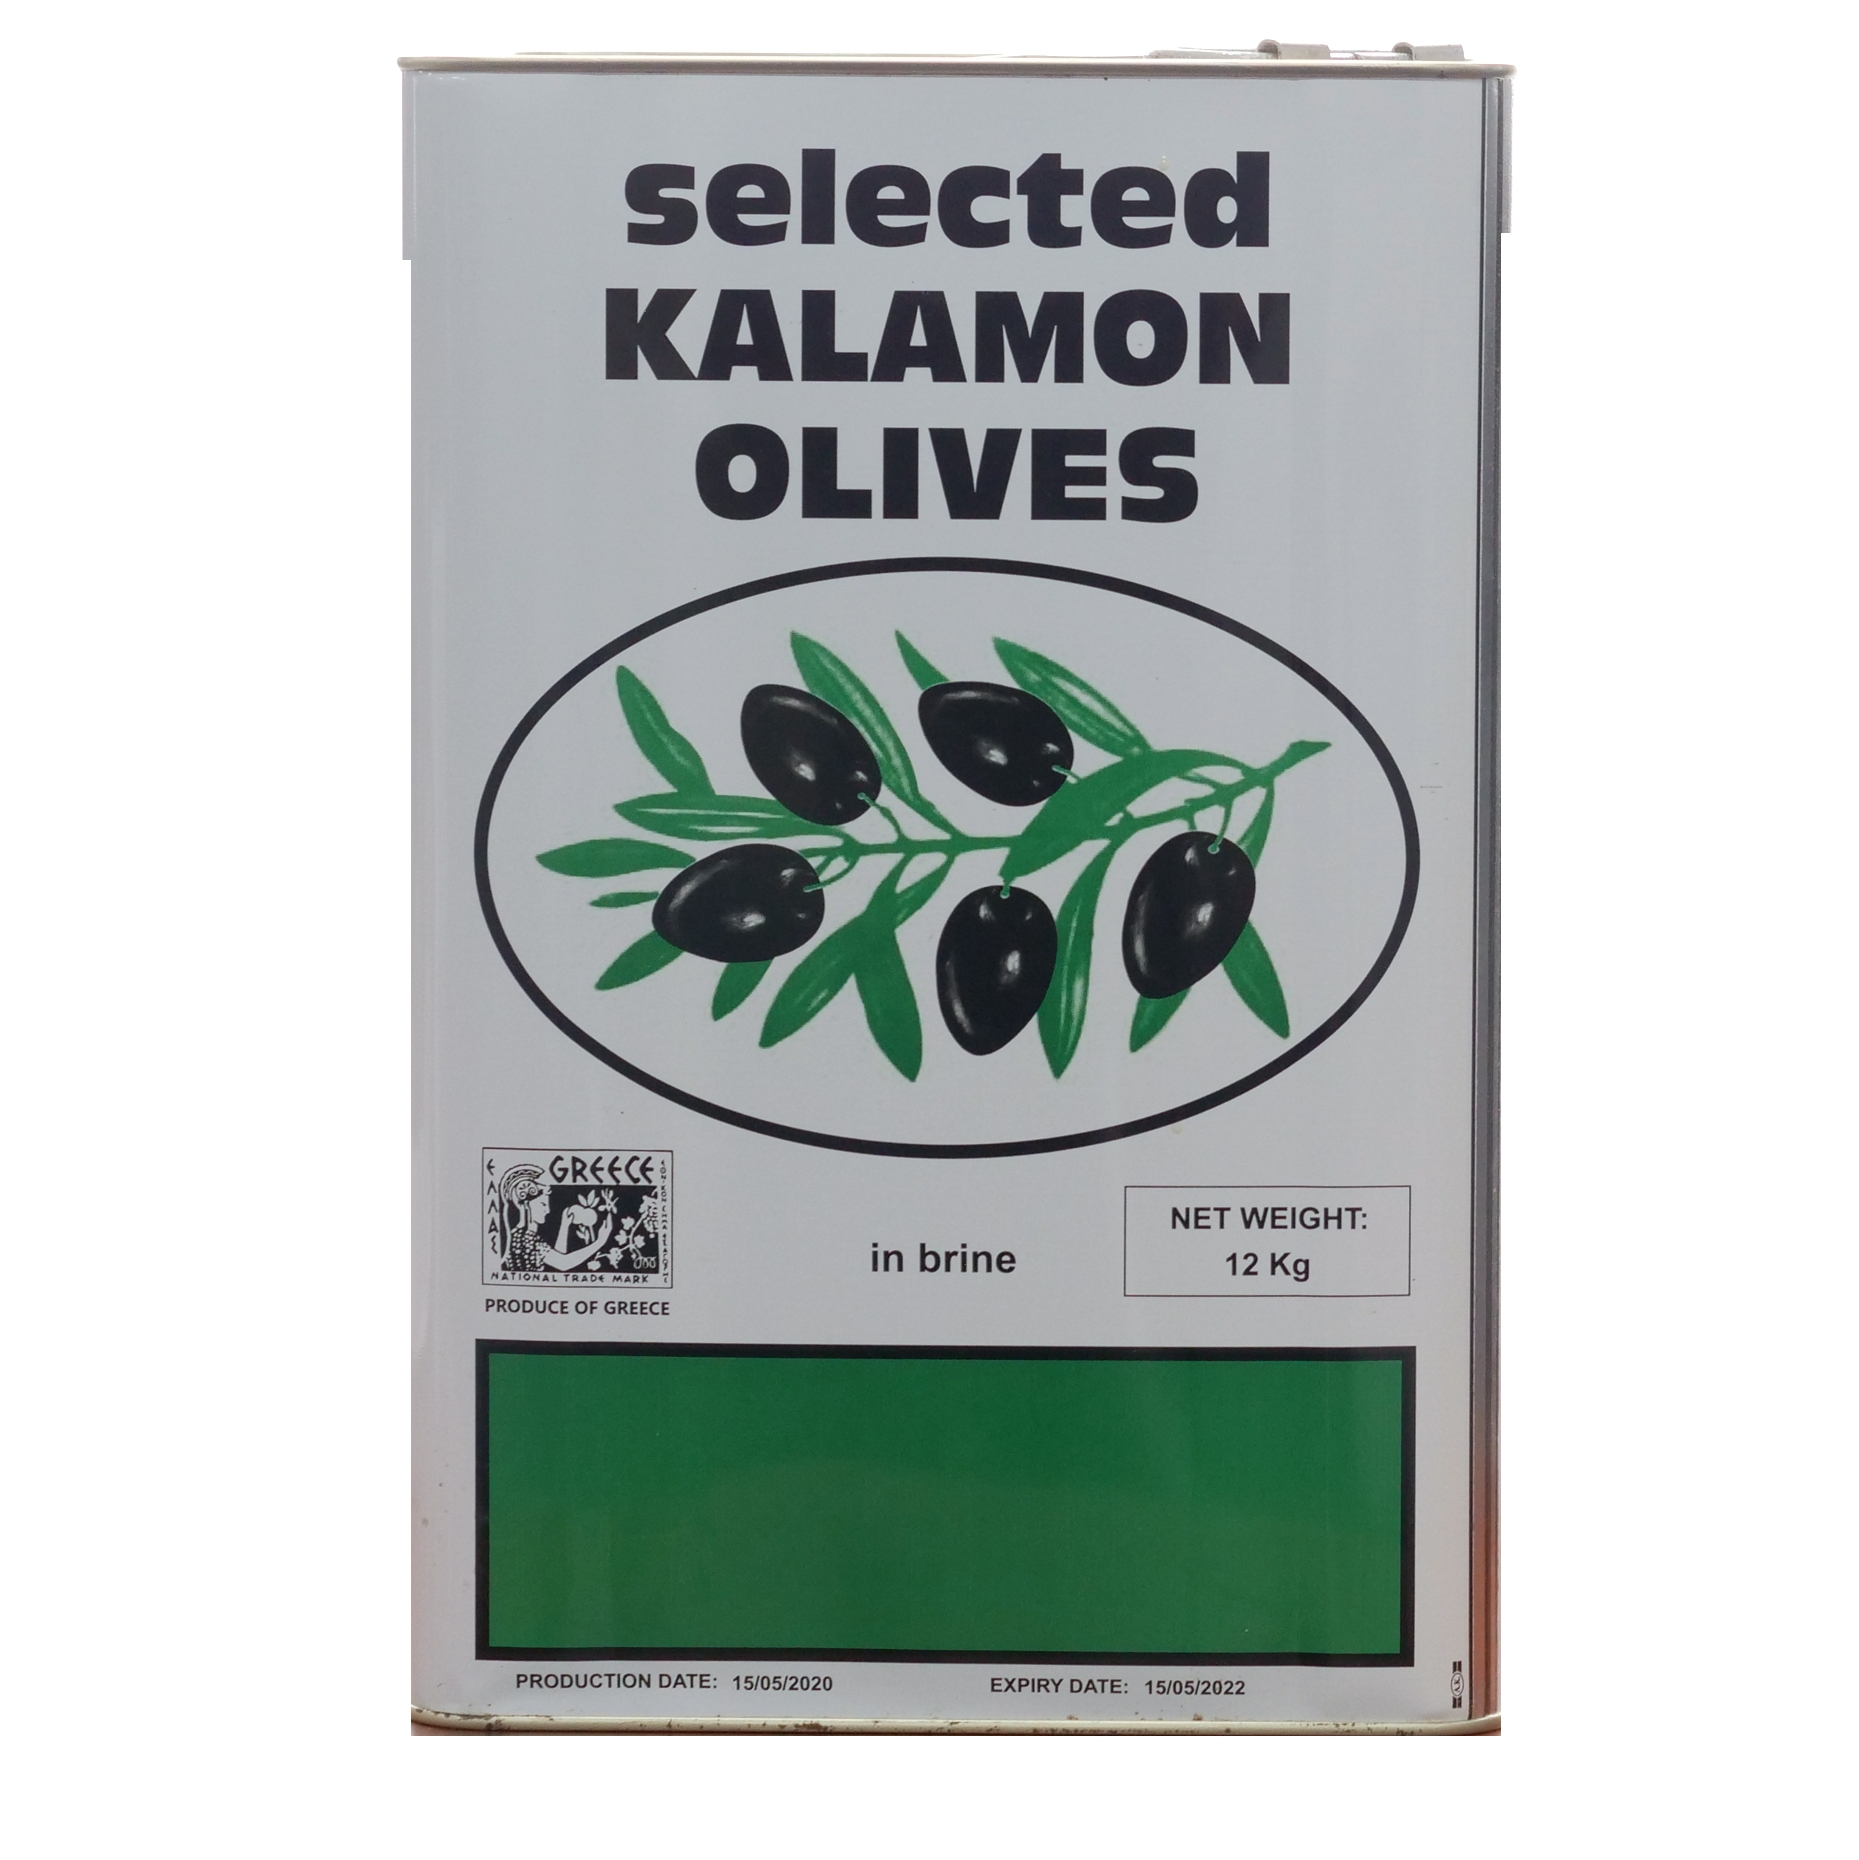 Black Kalamata Olives in Olive Oil 12KG Net